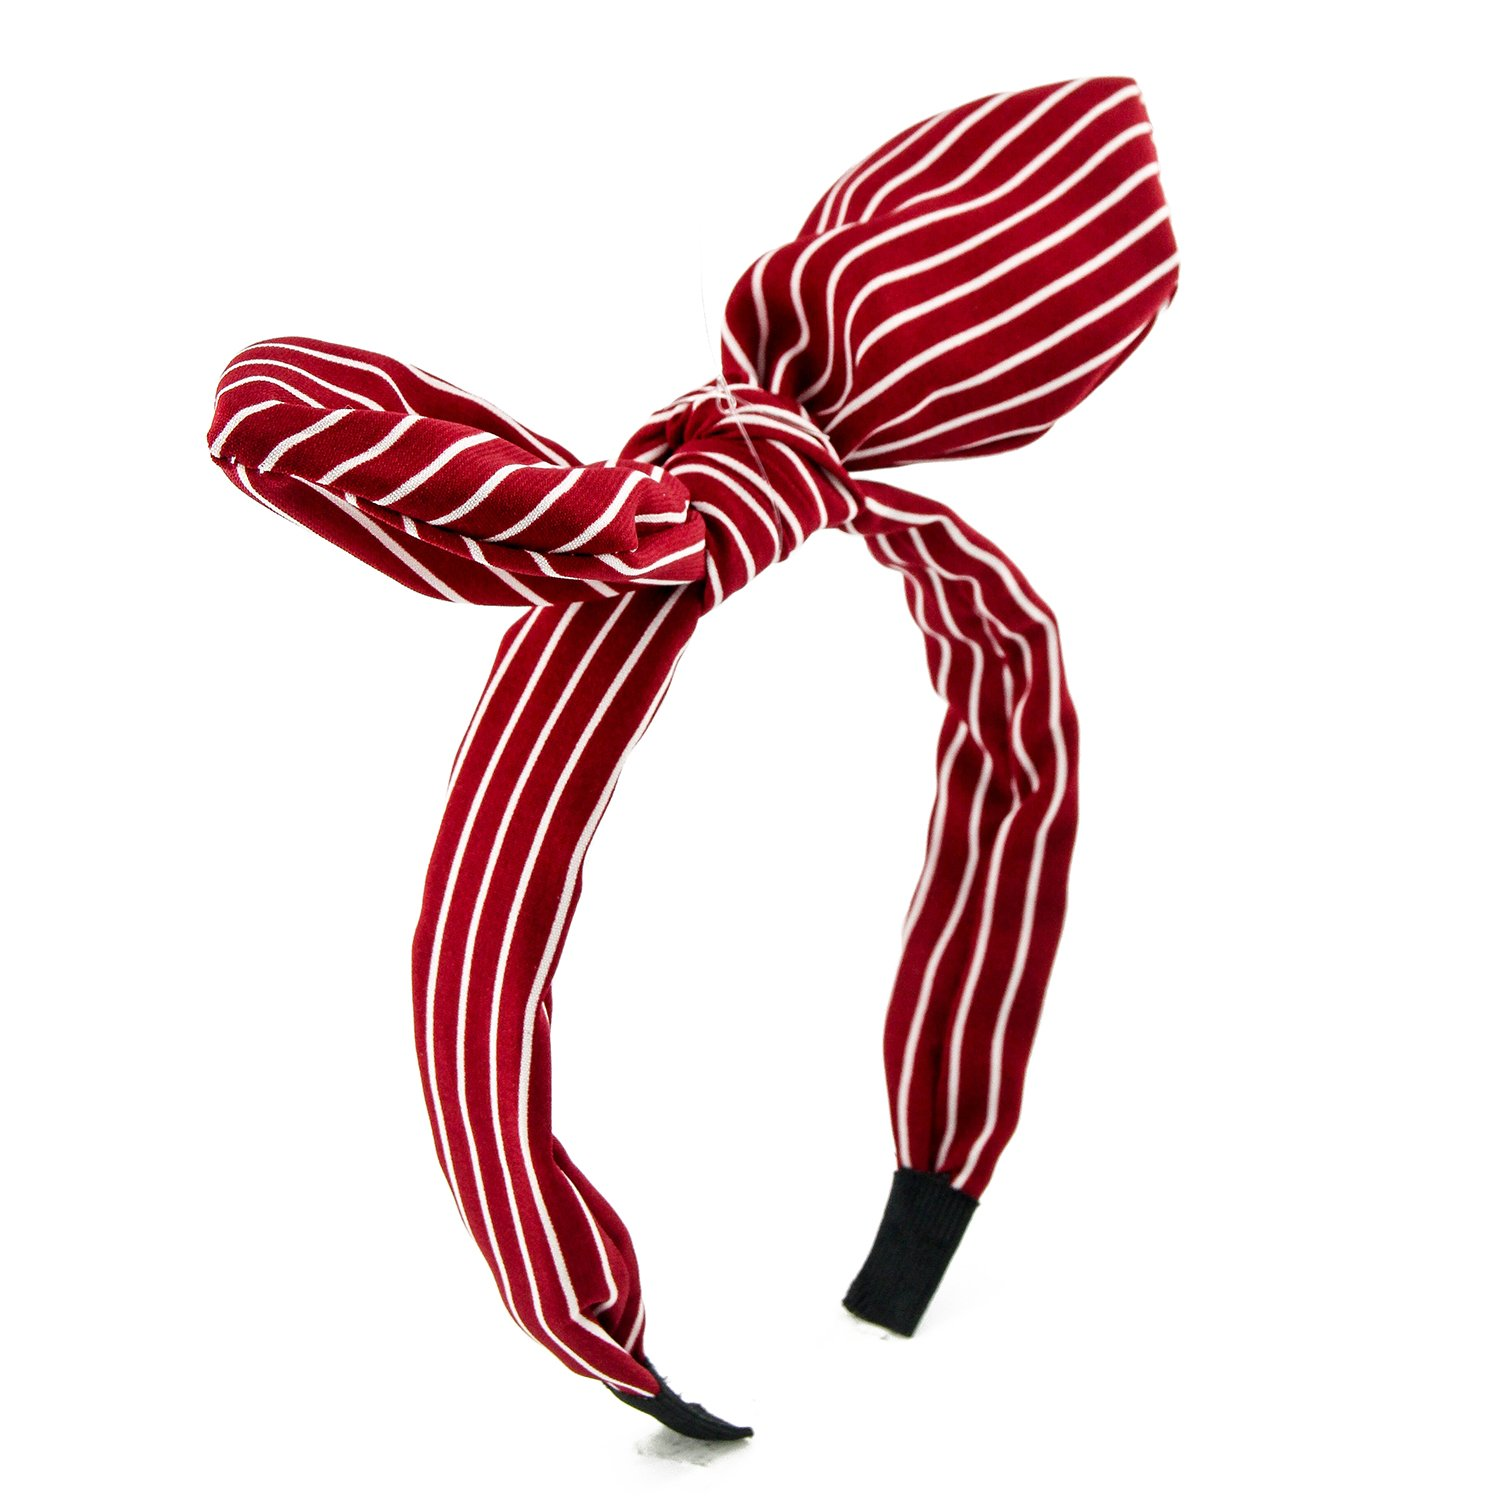 Carede Wired bow Headband With Polka Dot Style and Stripe Pattern Bowknot Plastic Headband for Women and Girls